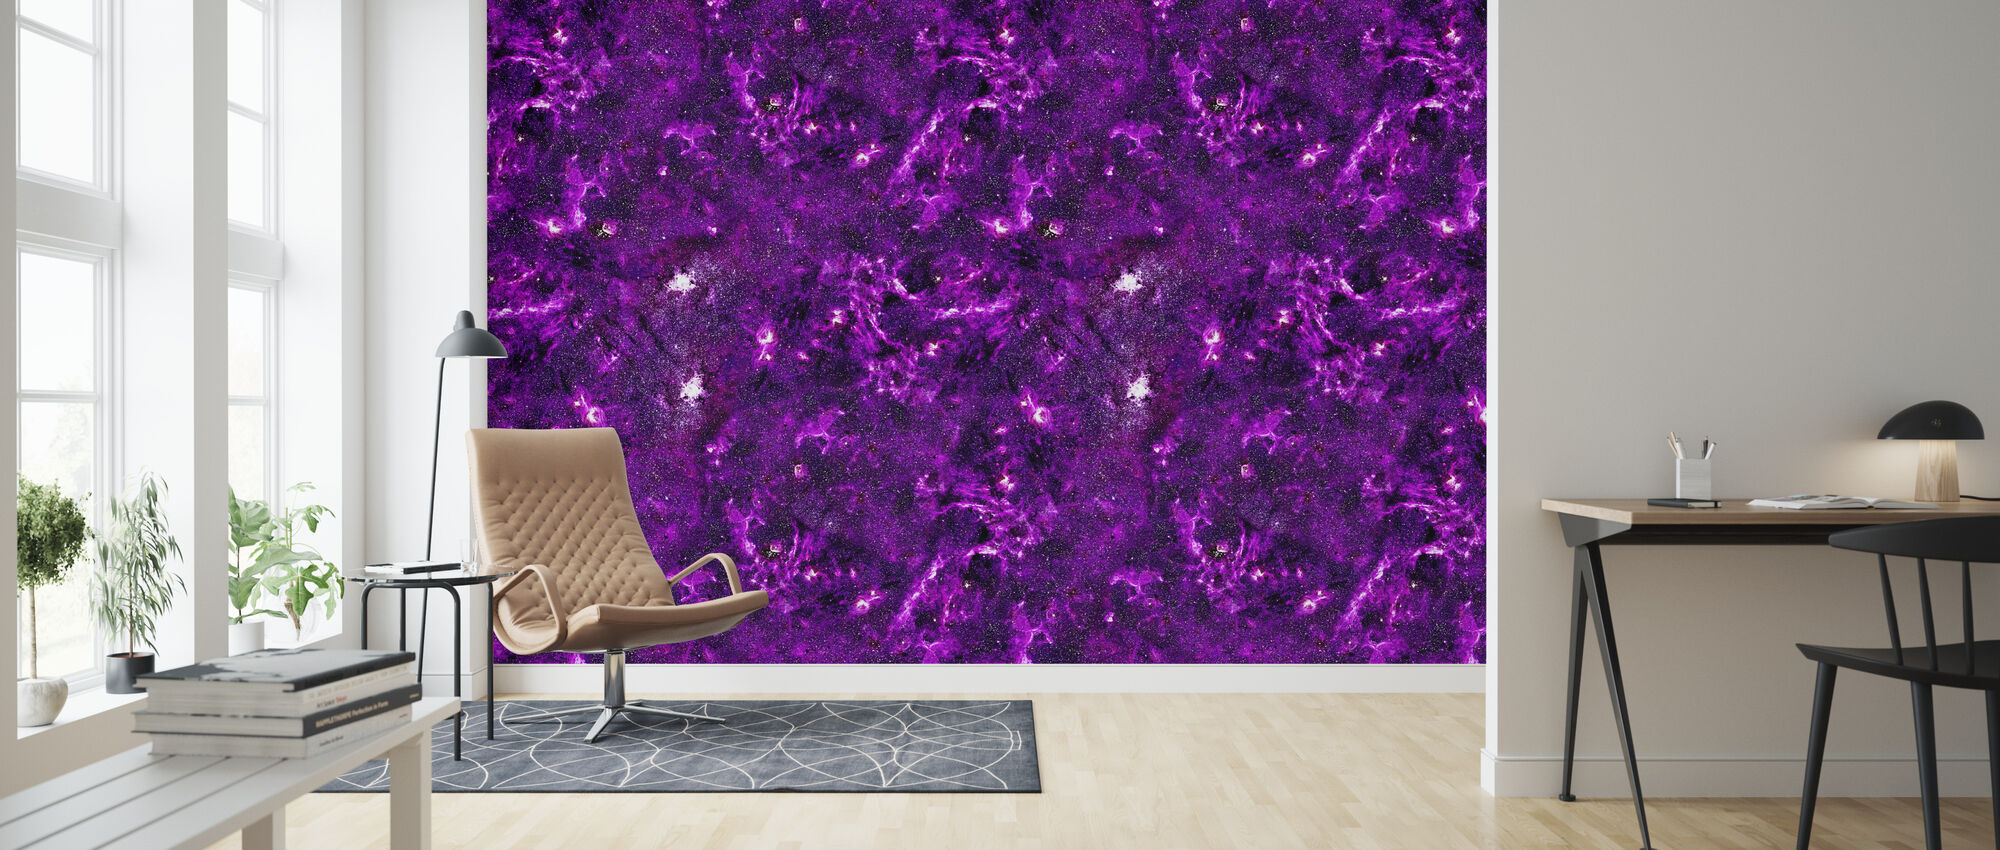 Pinkster - Wallpaper - Living Room